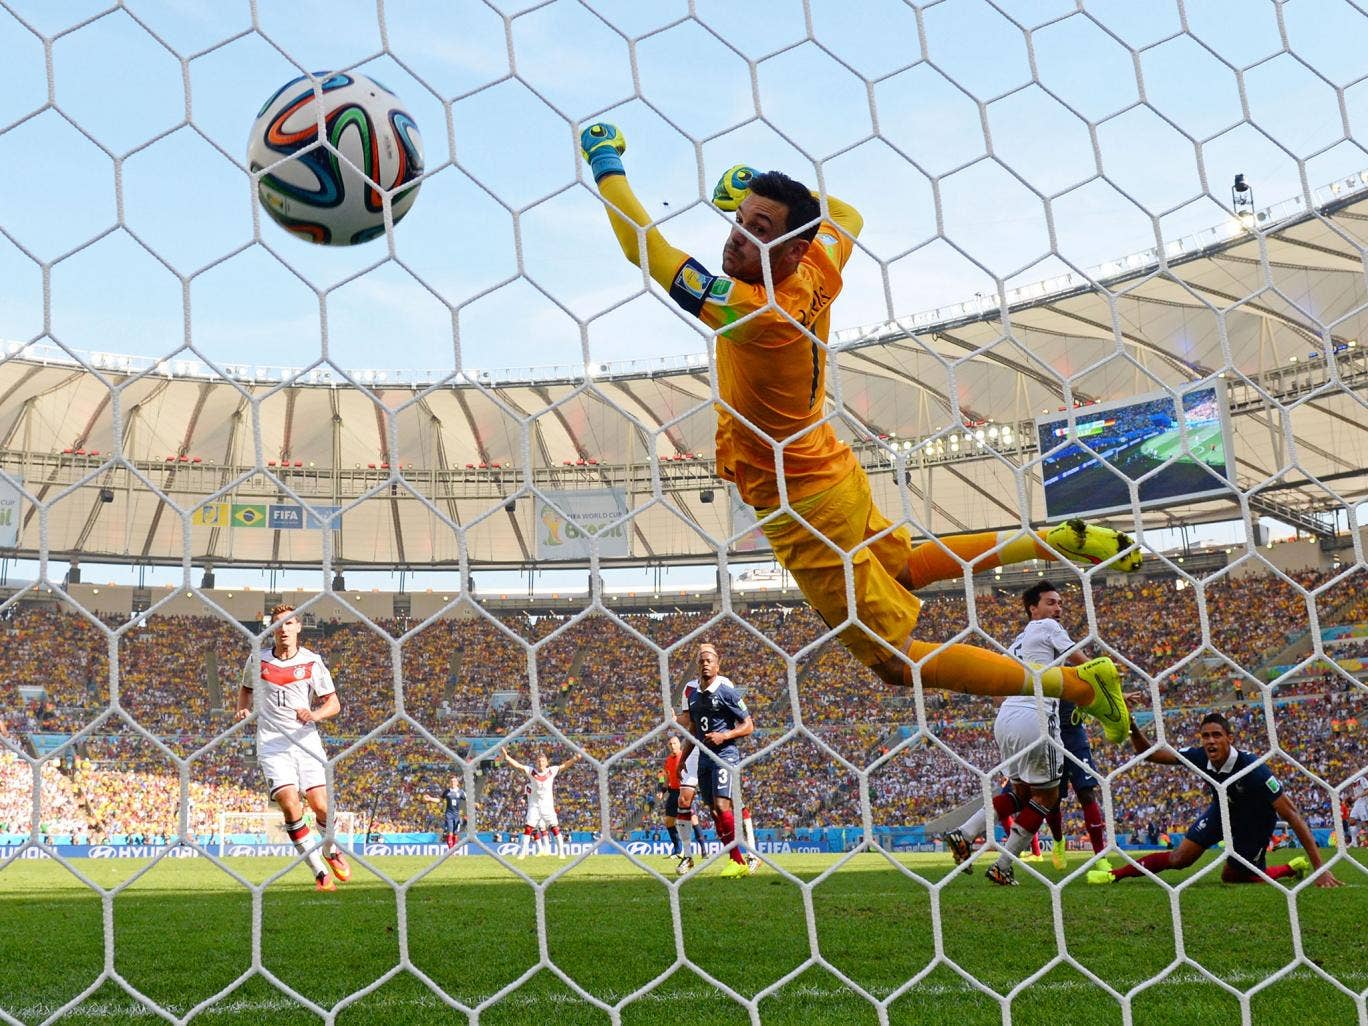 Mats Hummels heads past Hugo Lloris for the only goal of the game